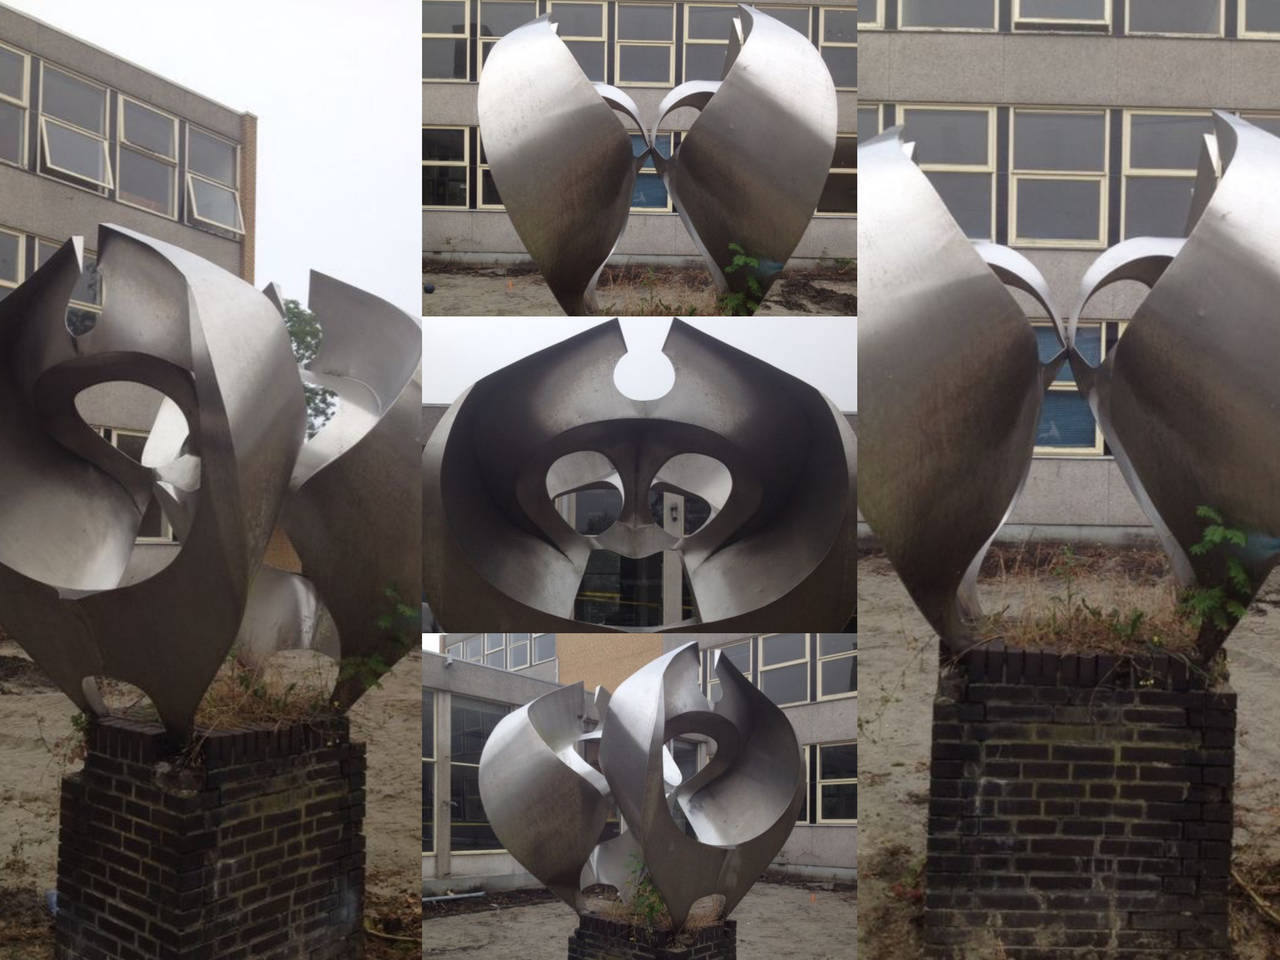 A monumental sculpture in stainless steel / Inox by Dutch artist Diet Wiegman made in 1969